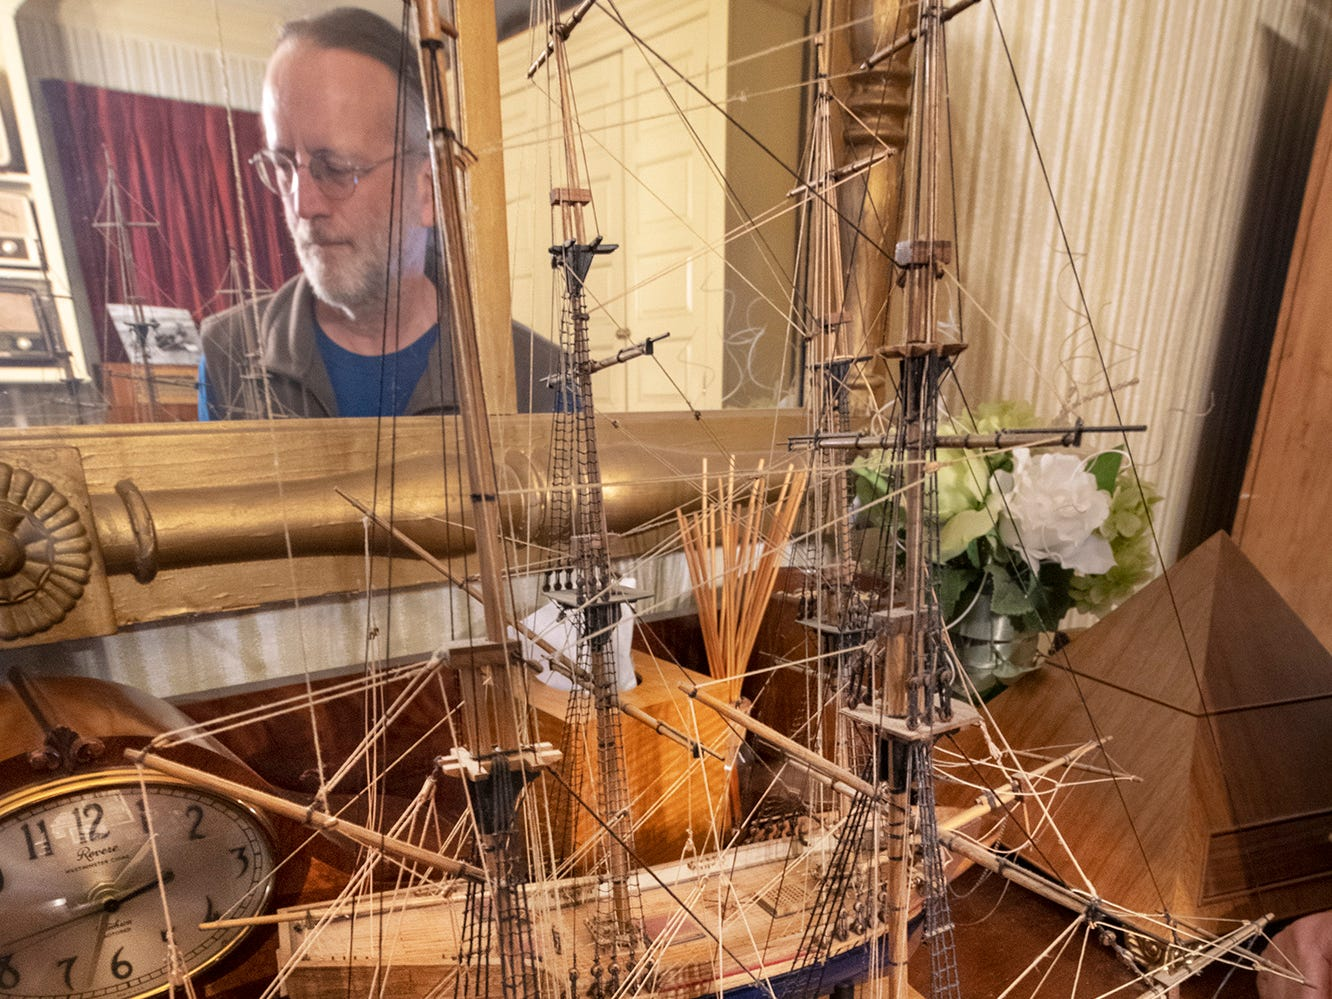 Dennis Kinkle stands with the two ships made by Roland Whitmire in the 1970s at his home on West Philadelphia Street in York. Kunkle, who has owned the home for 15 years, recently bought them back at an auction and plans on cleaning and displaying them again in the home.